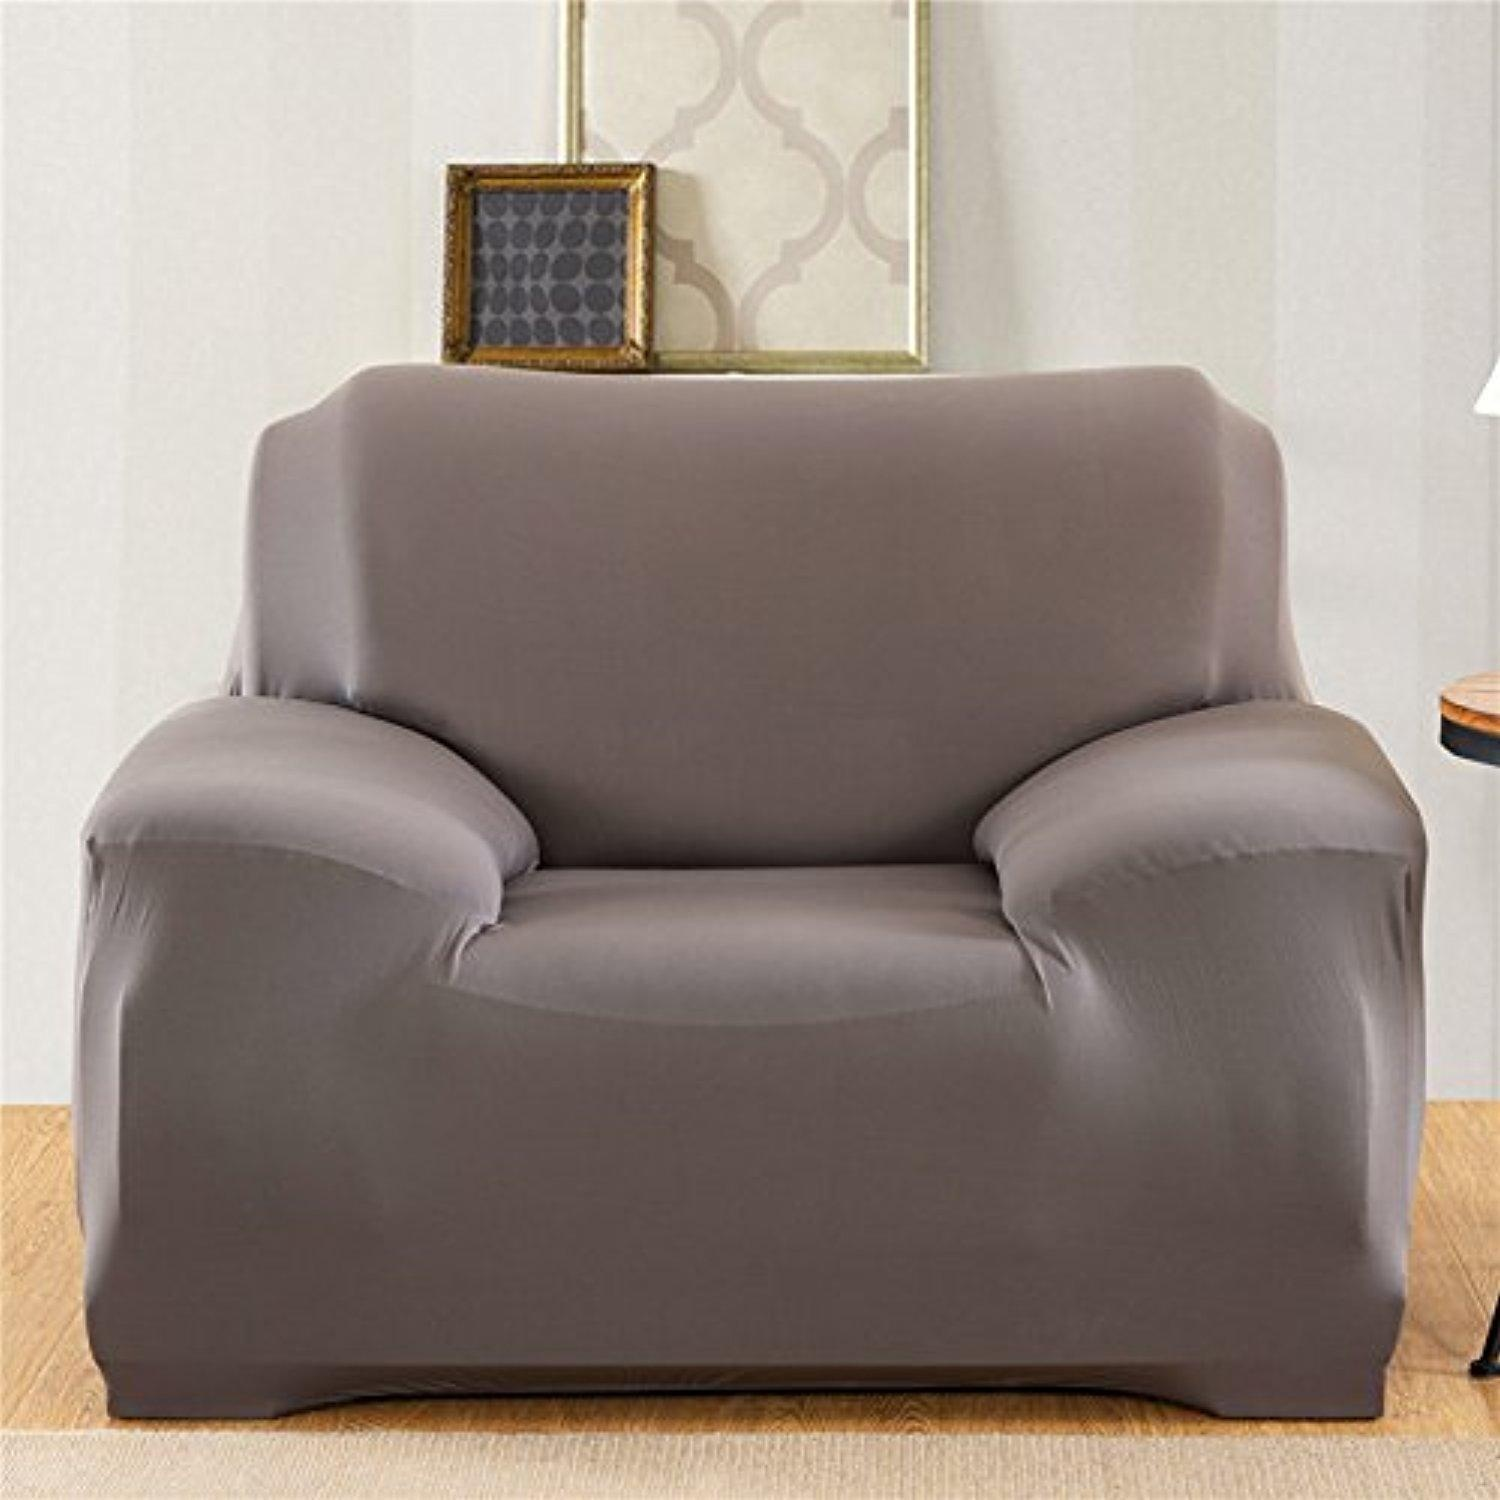 line Store Yiwant Sofa Cover Slipcover Protector Chair Covers